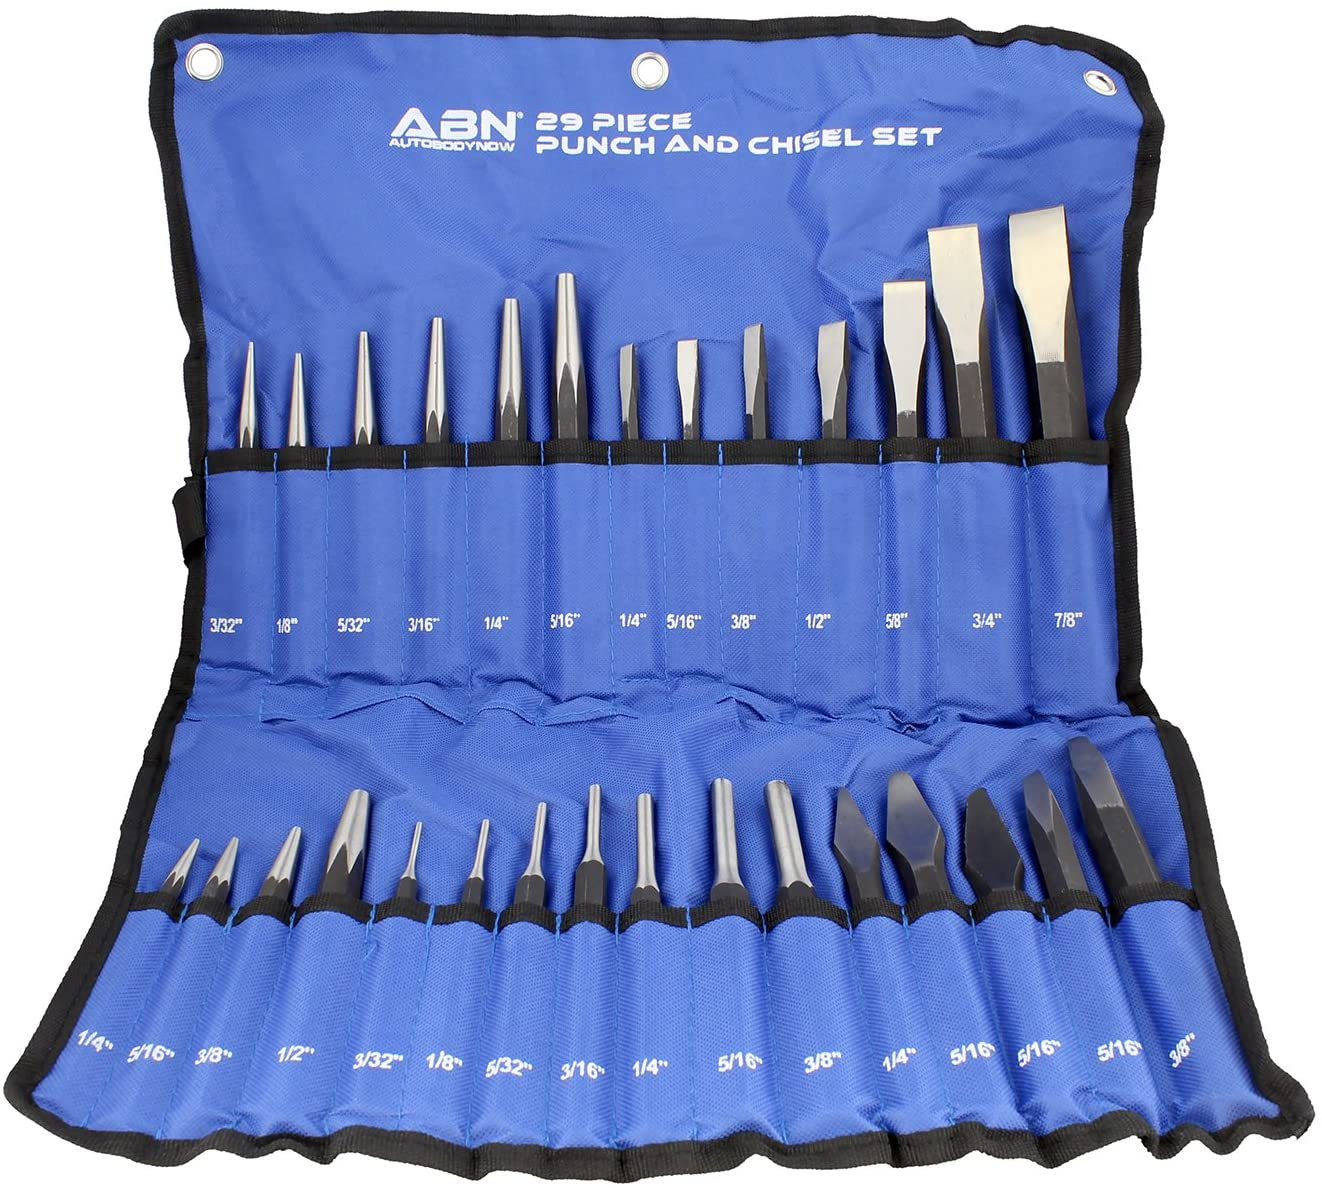 ABN Cold Popular shop is the lowest price challenge Chisel Set Automotive Punch Tool Max 68% OFF – Pu Kit 29-Piece